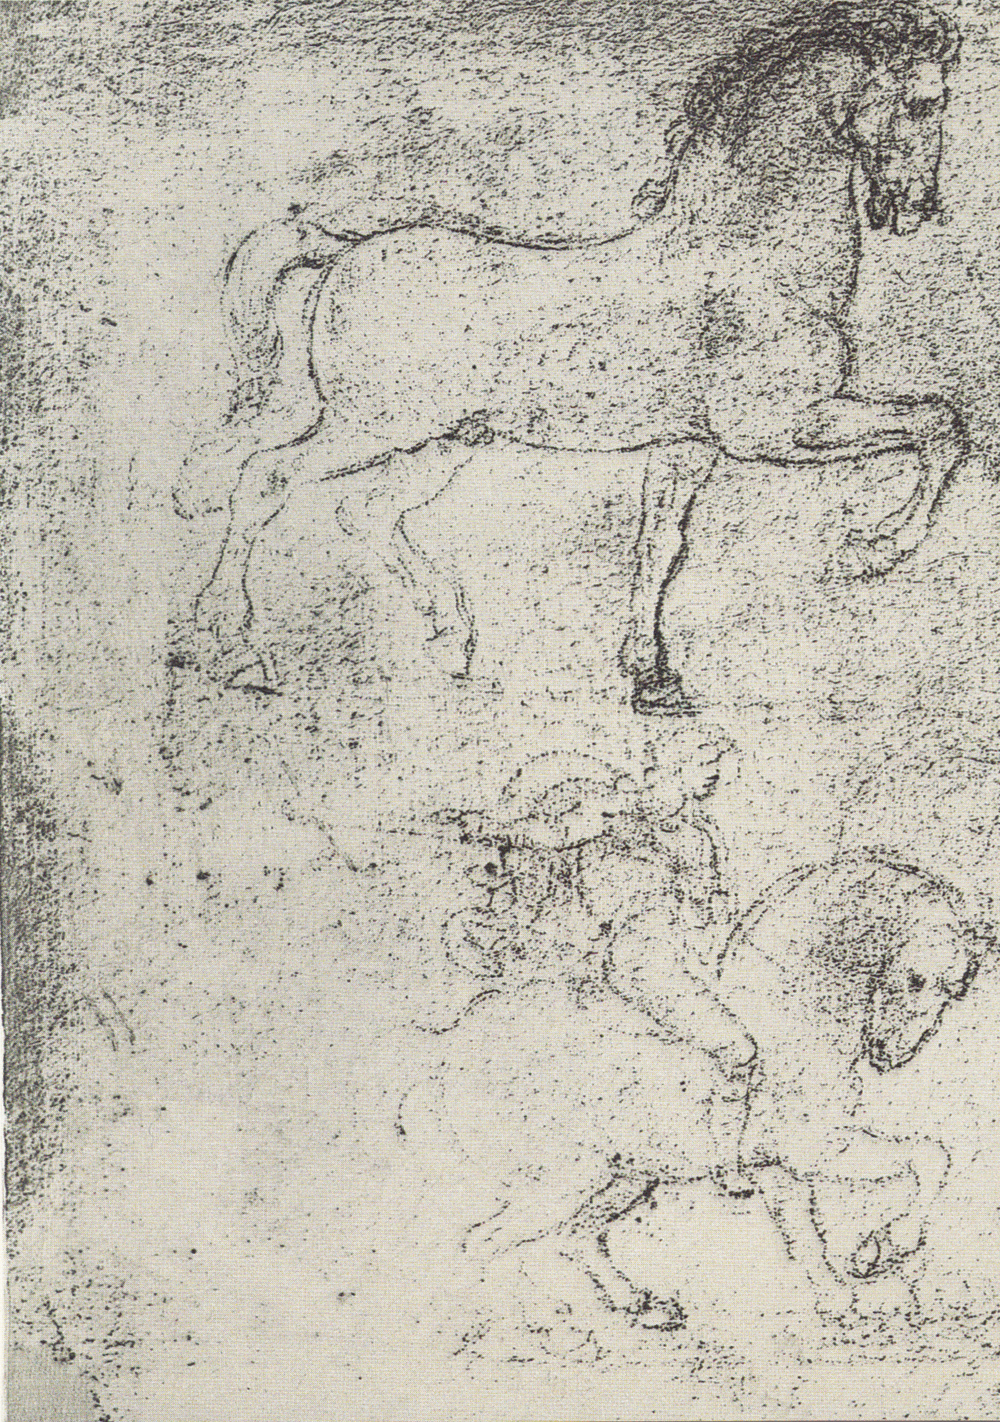 Leonardo da Vinci - Drawings - Animals - Horses - 01.jpg